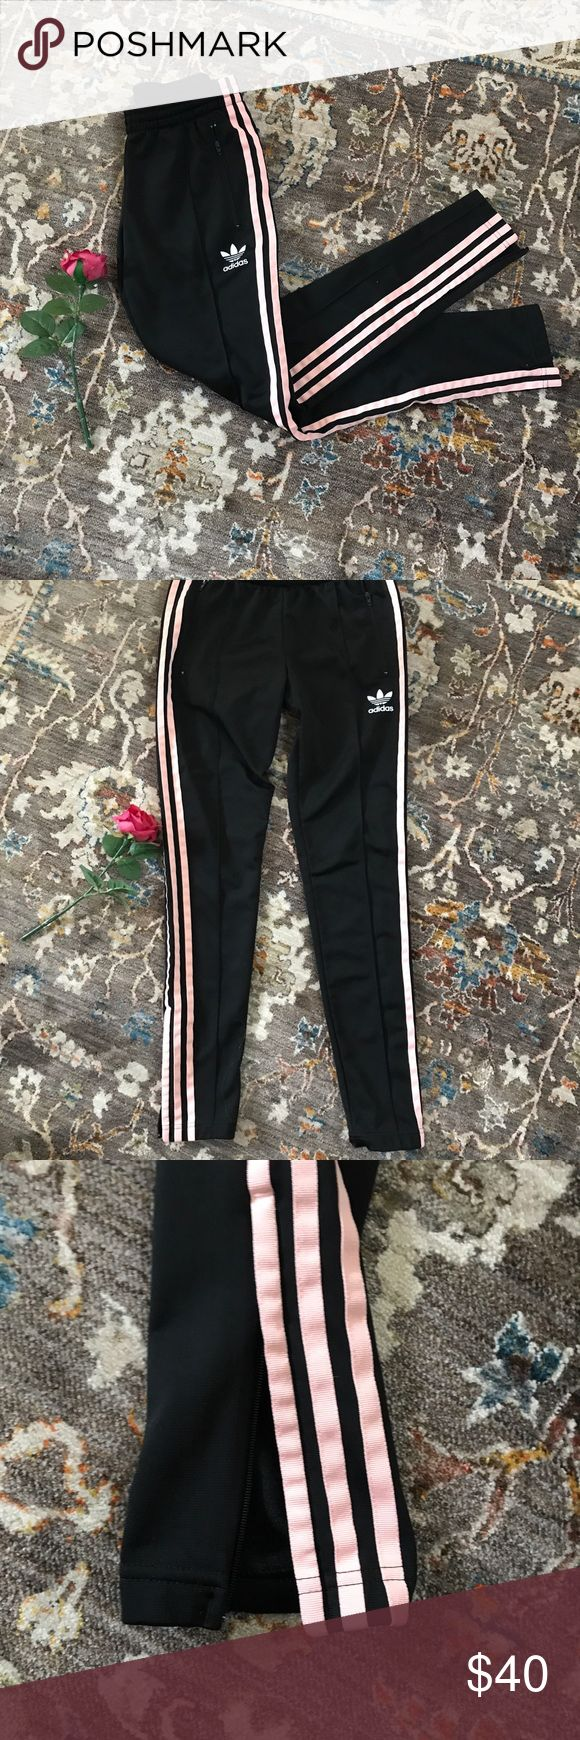 Adidas skinny ankle track pants Adidas track pants with light peachy pink stripes. Low rise, skinny ankle cut. Zips at the ankle and zip pockets. Very good condition! adidas Pants Track Pants & Joggers